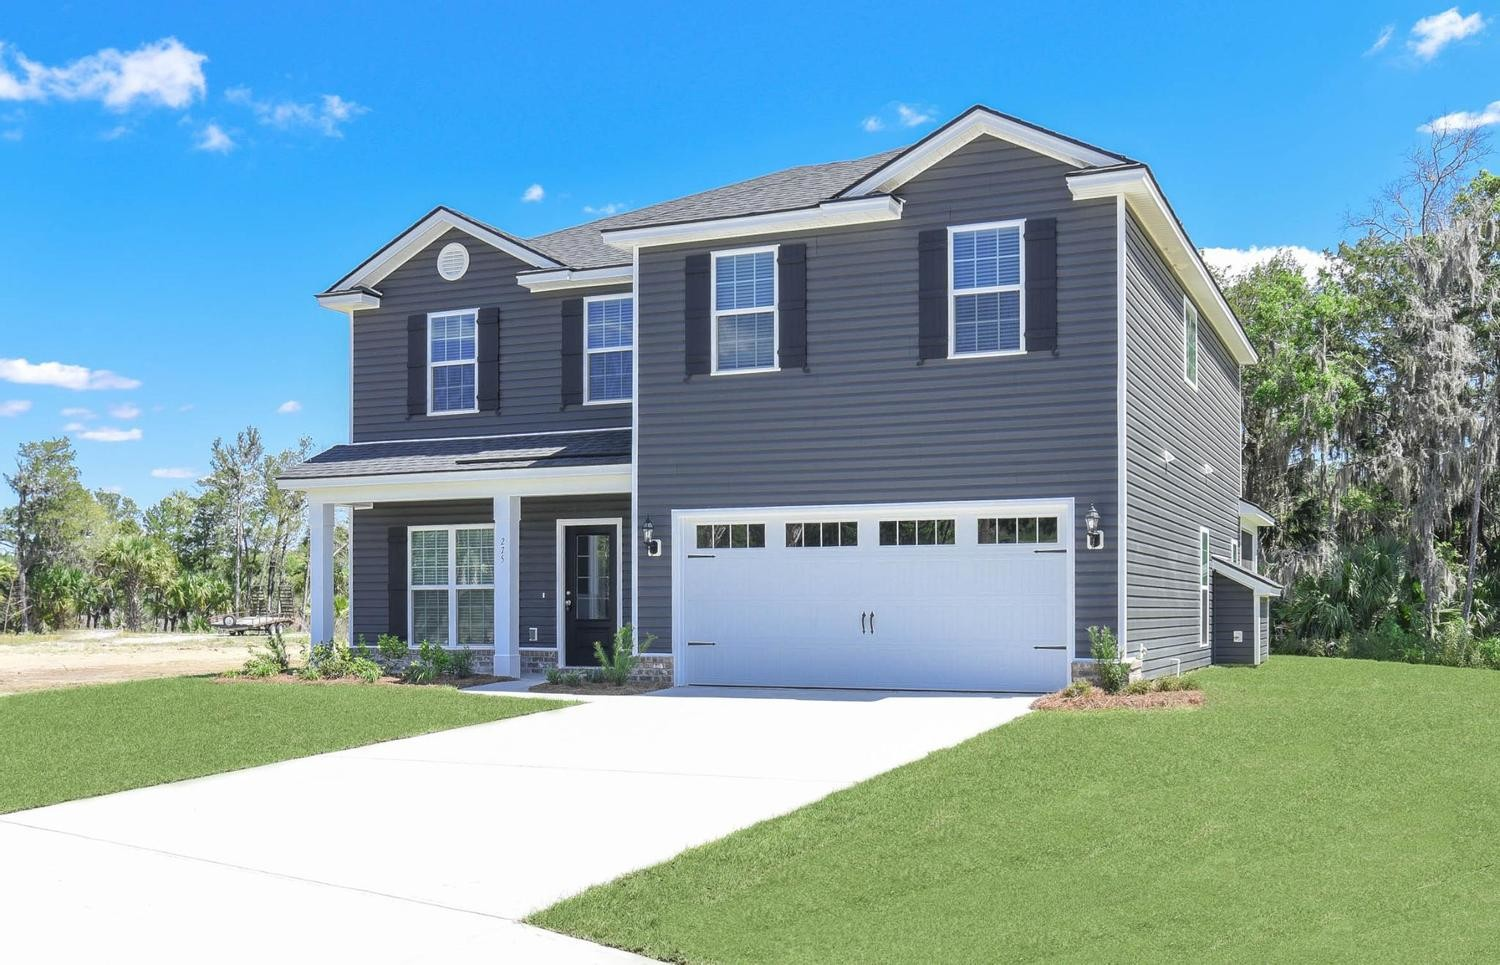 Move In Ready New Home In Wexford Community